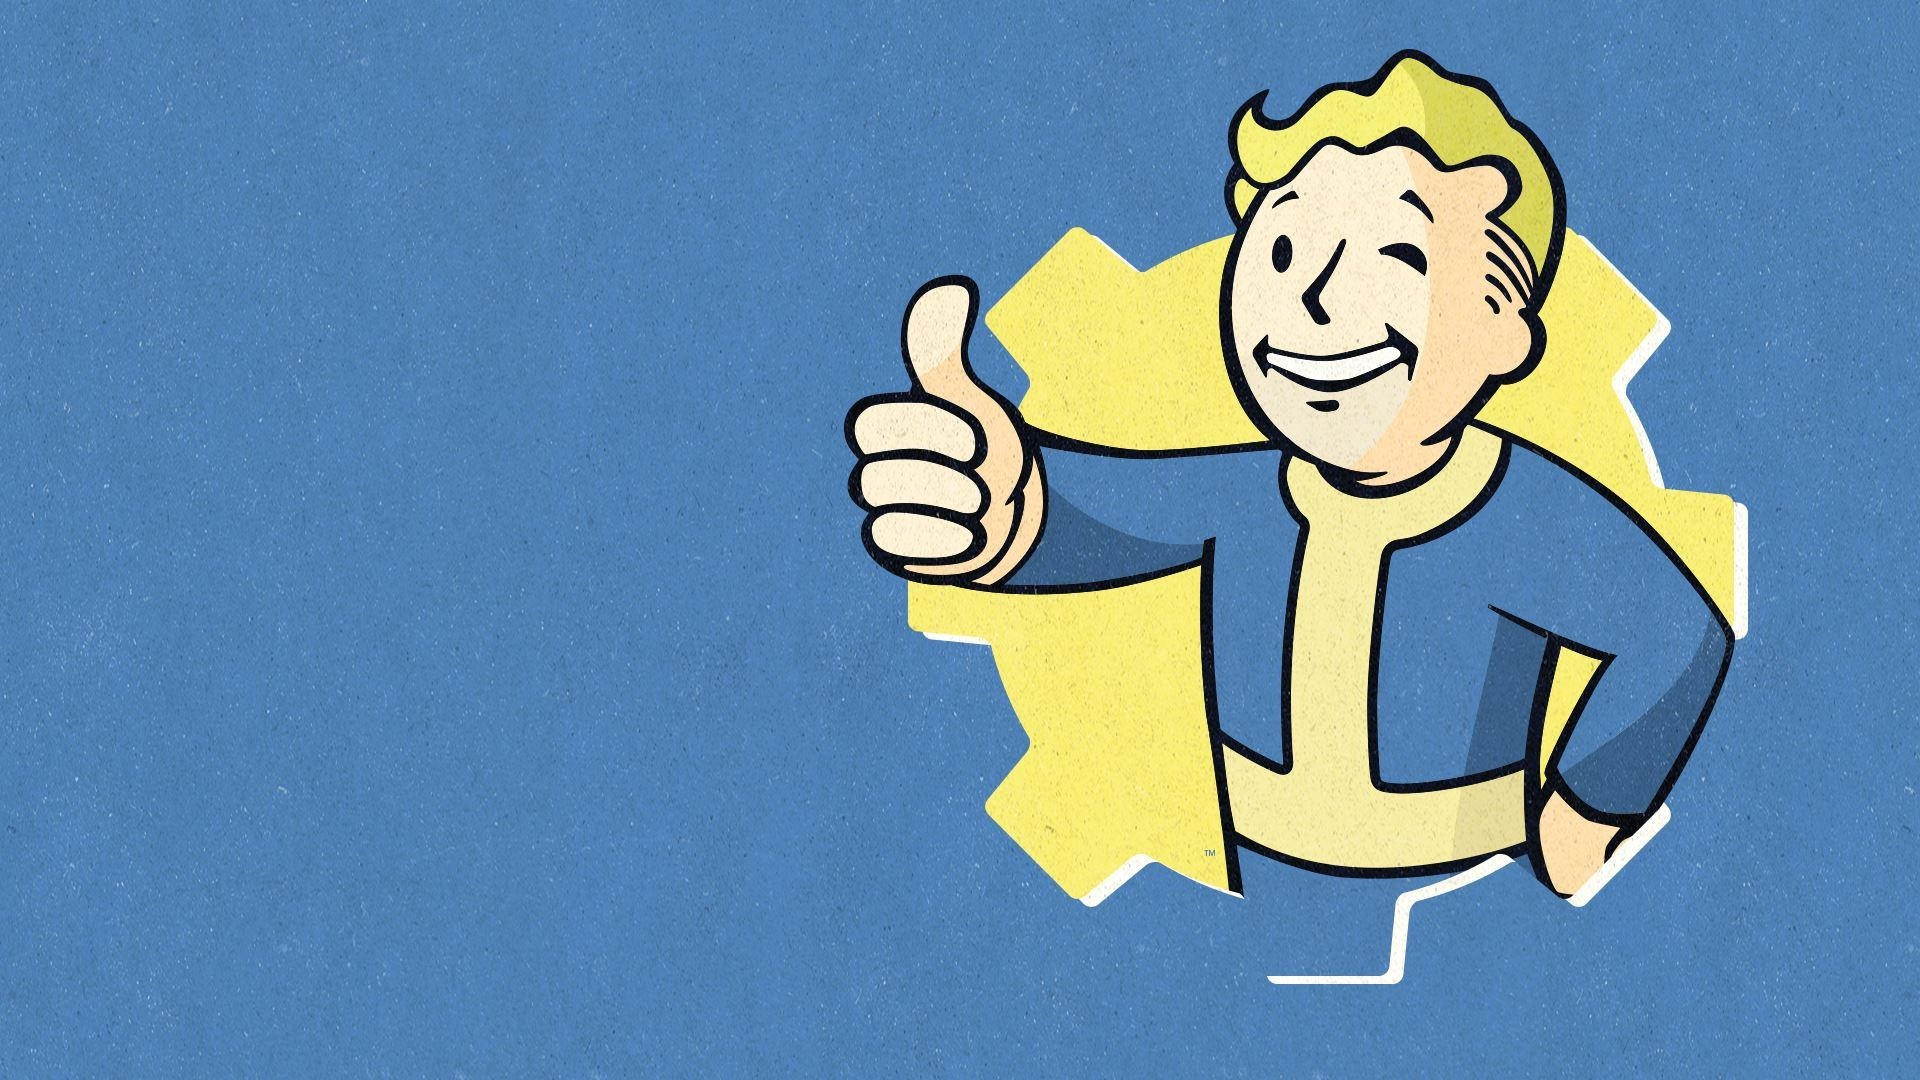 Vault Boy Desktop Wallpaper 49008 1920x1080px